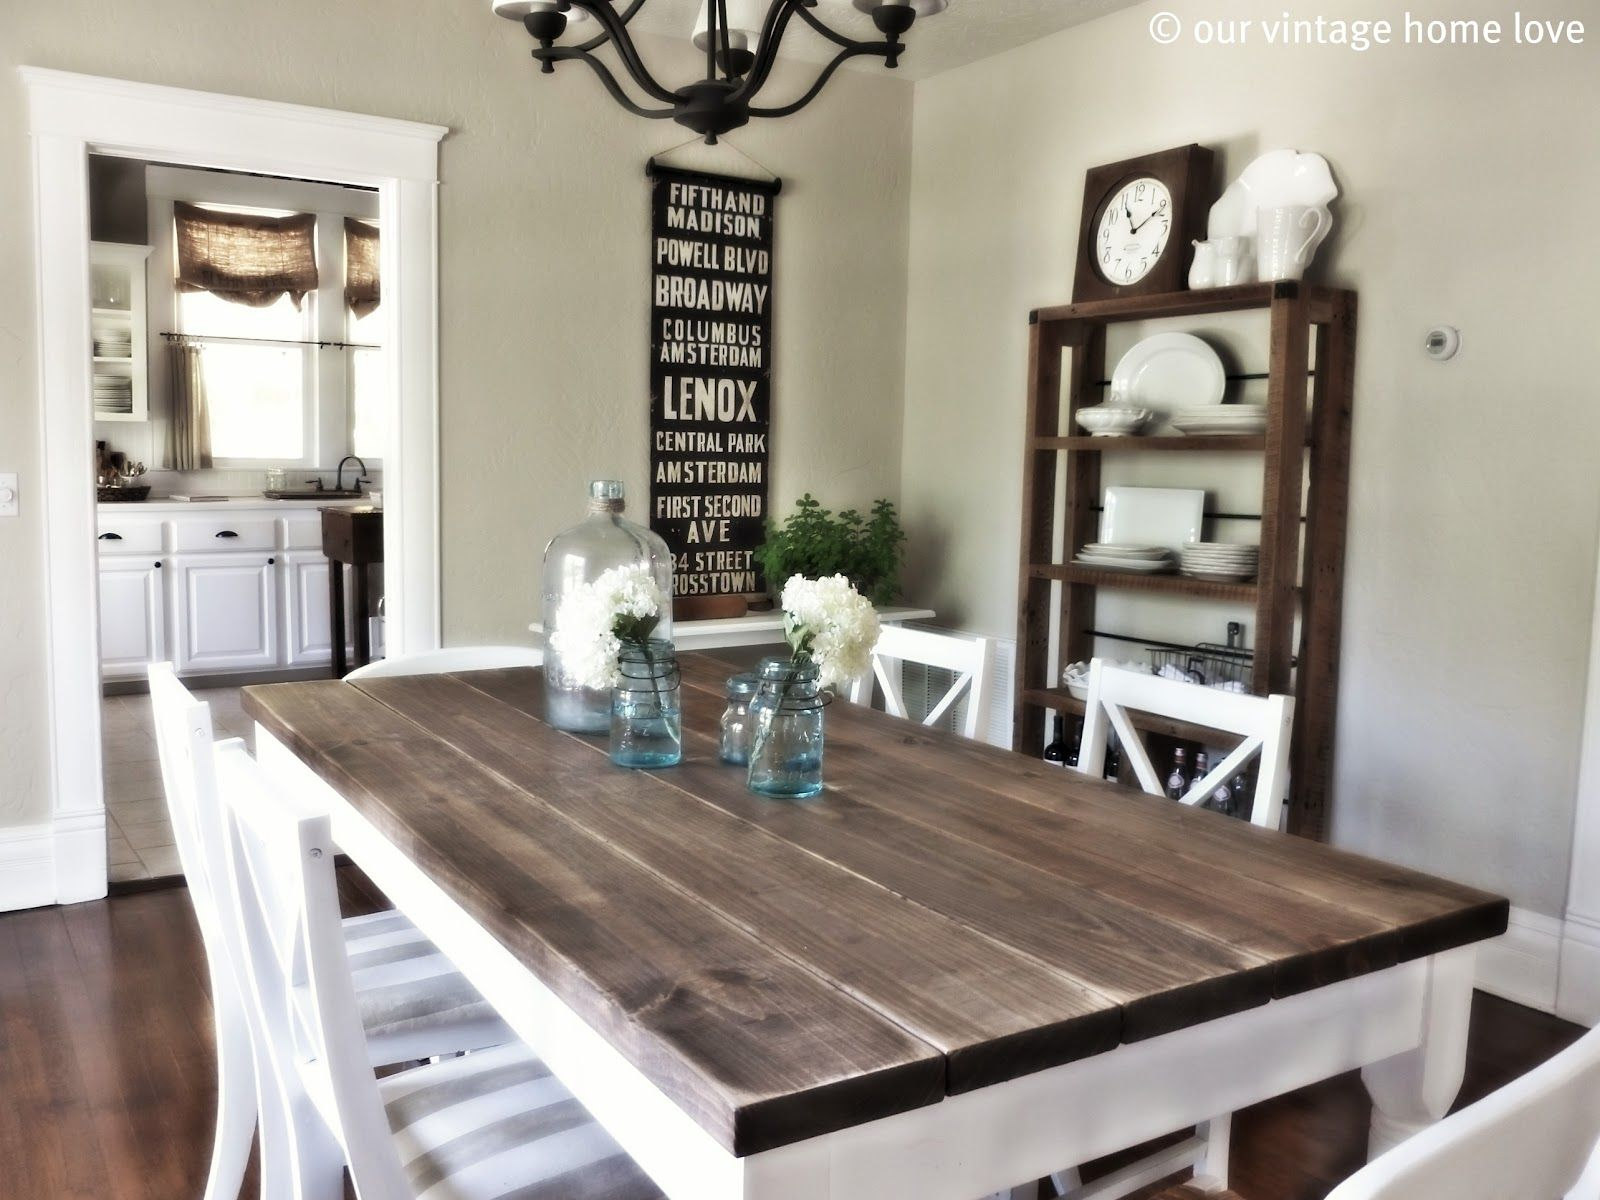 DIY Kitchen Table Top   Our Vintage Home Love: Dining Room Table